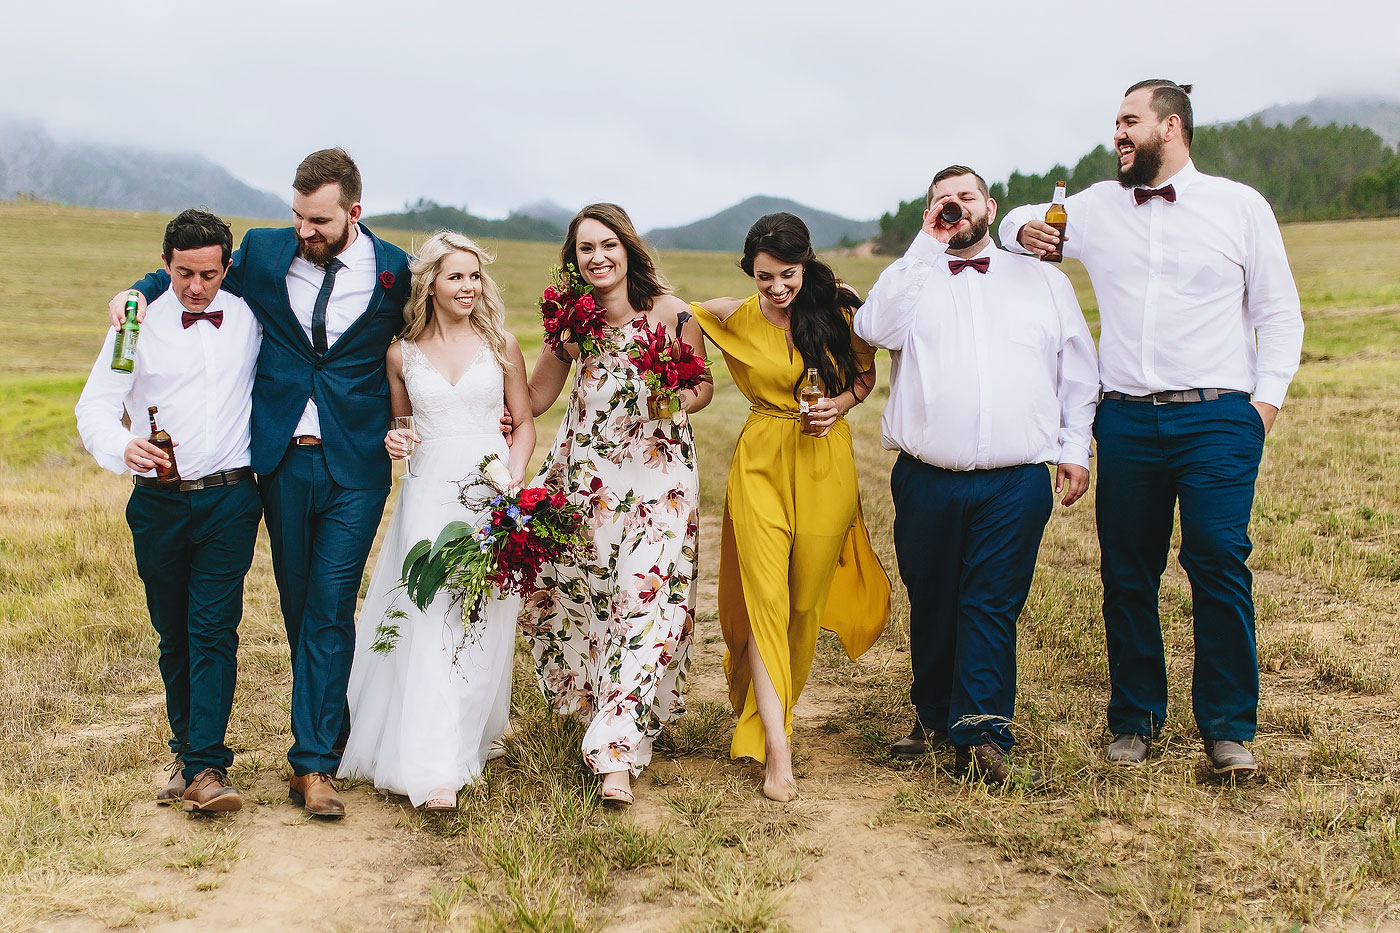 Fun Moment Bridal Party Porrait